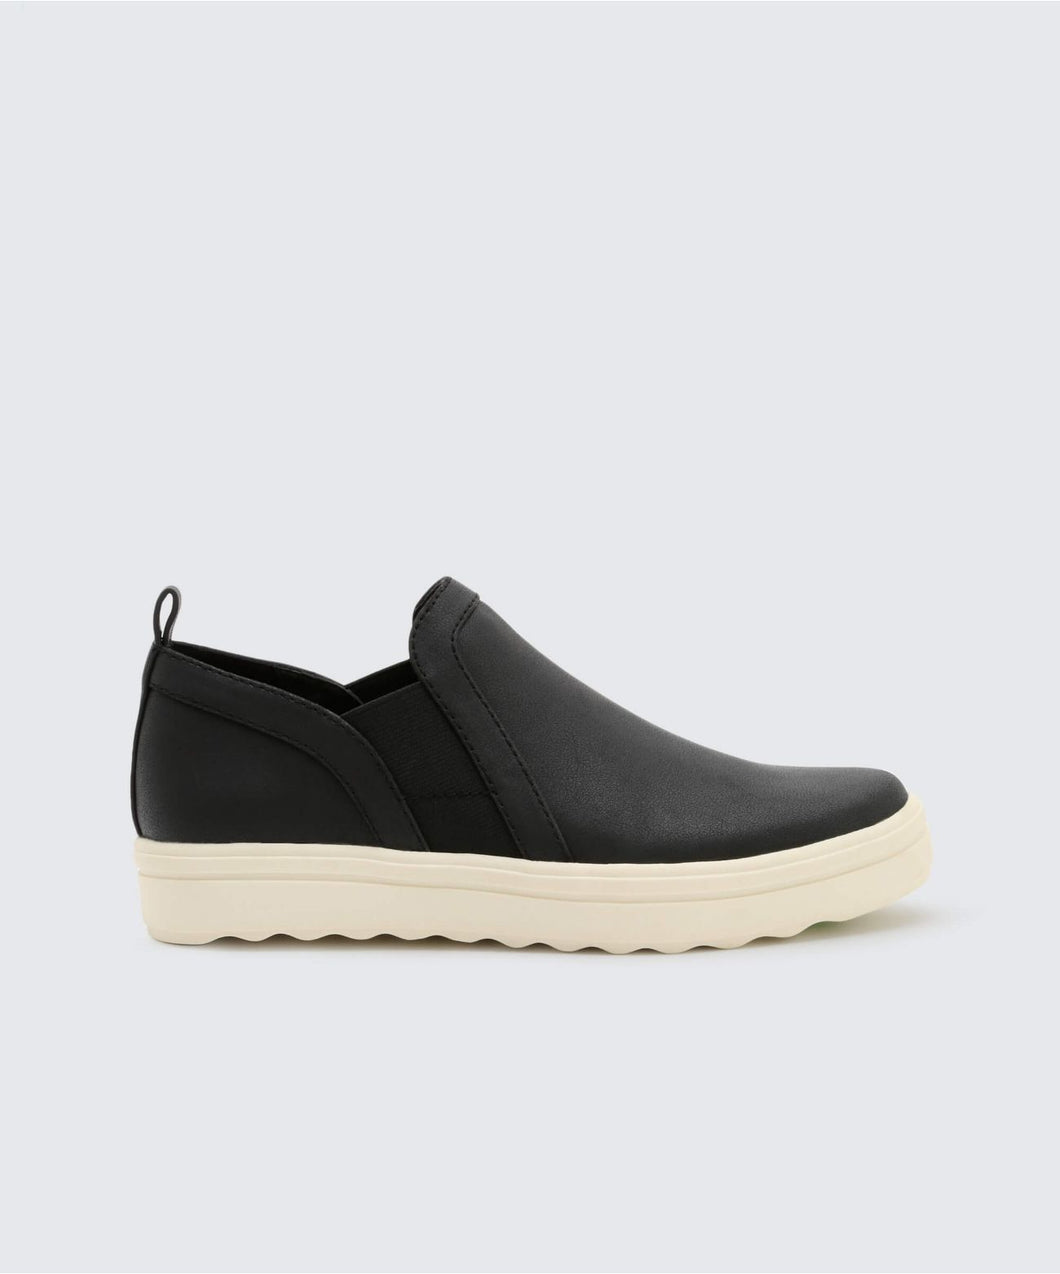 PULSE SNEAKERS BLACK -   Dolce Vita